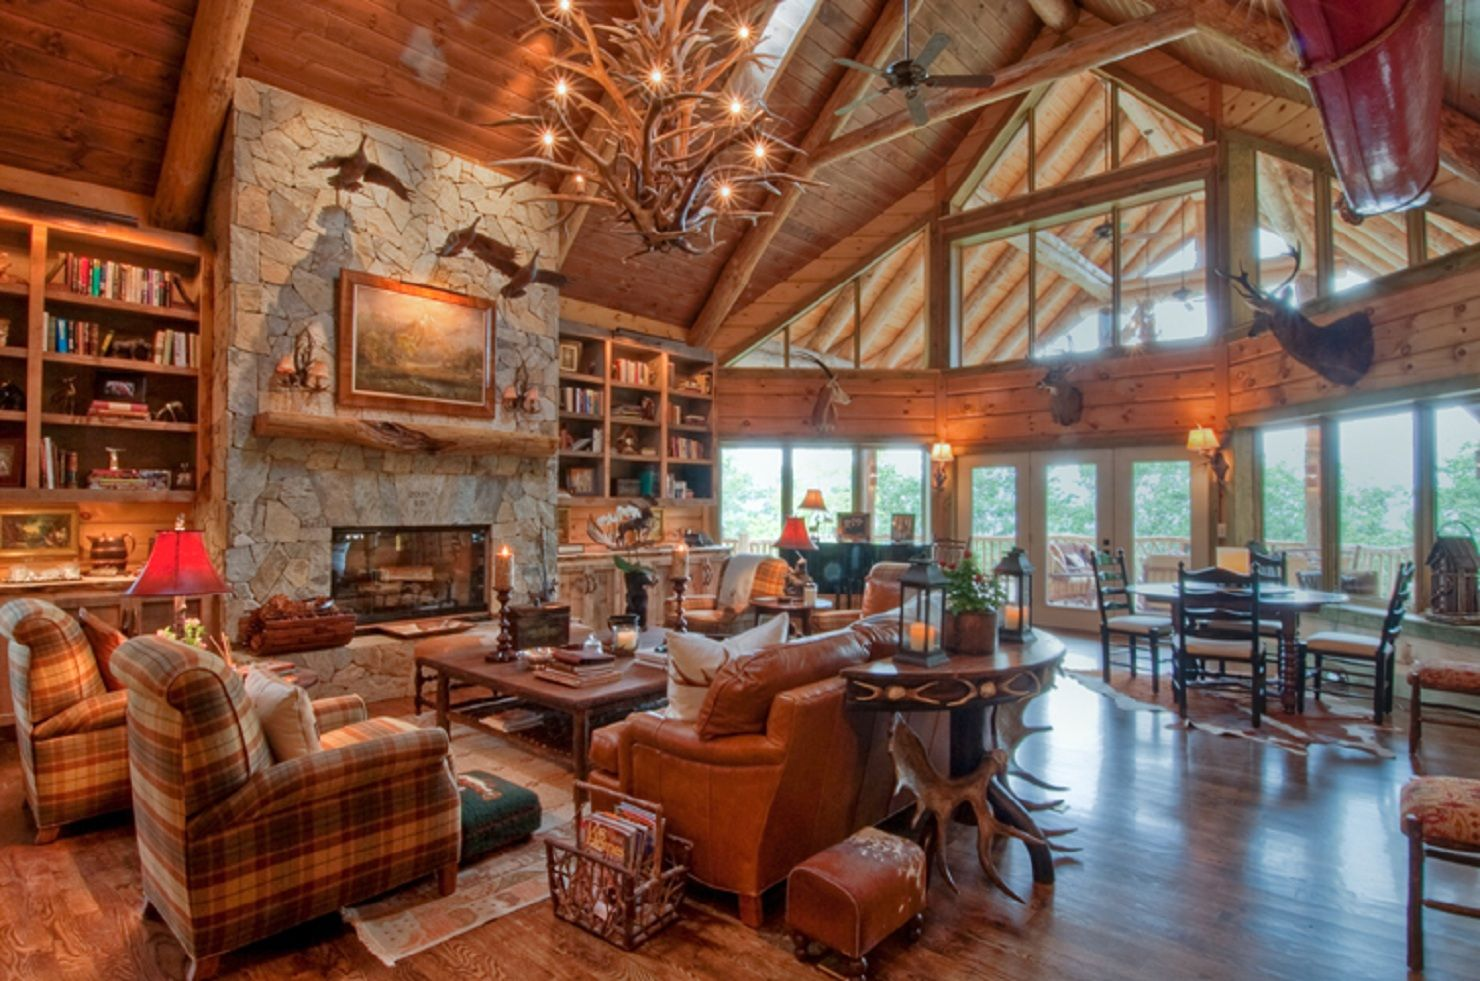 Log Cabin Home Living Room Conway Ready For Snow Home Design Log Cabin Interior Ideas Decorati Log Home Interior Log Cabin Interior Cabin Interior Design